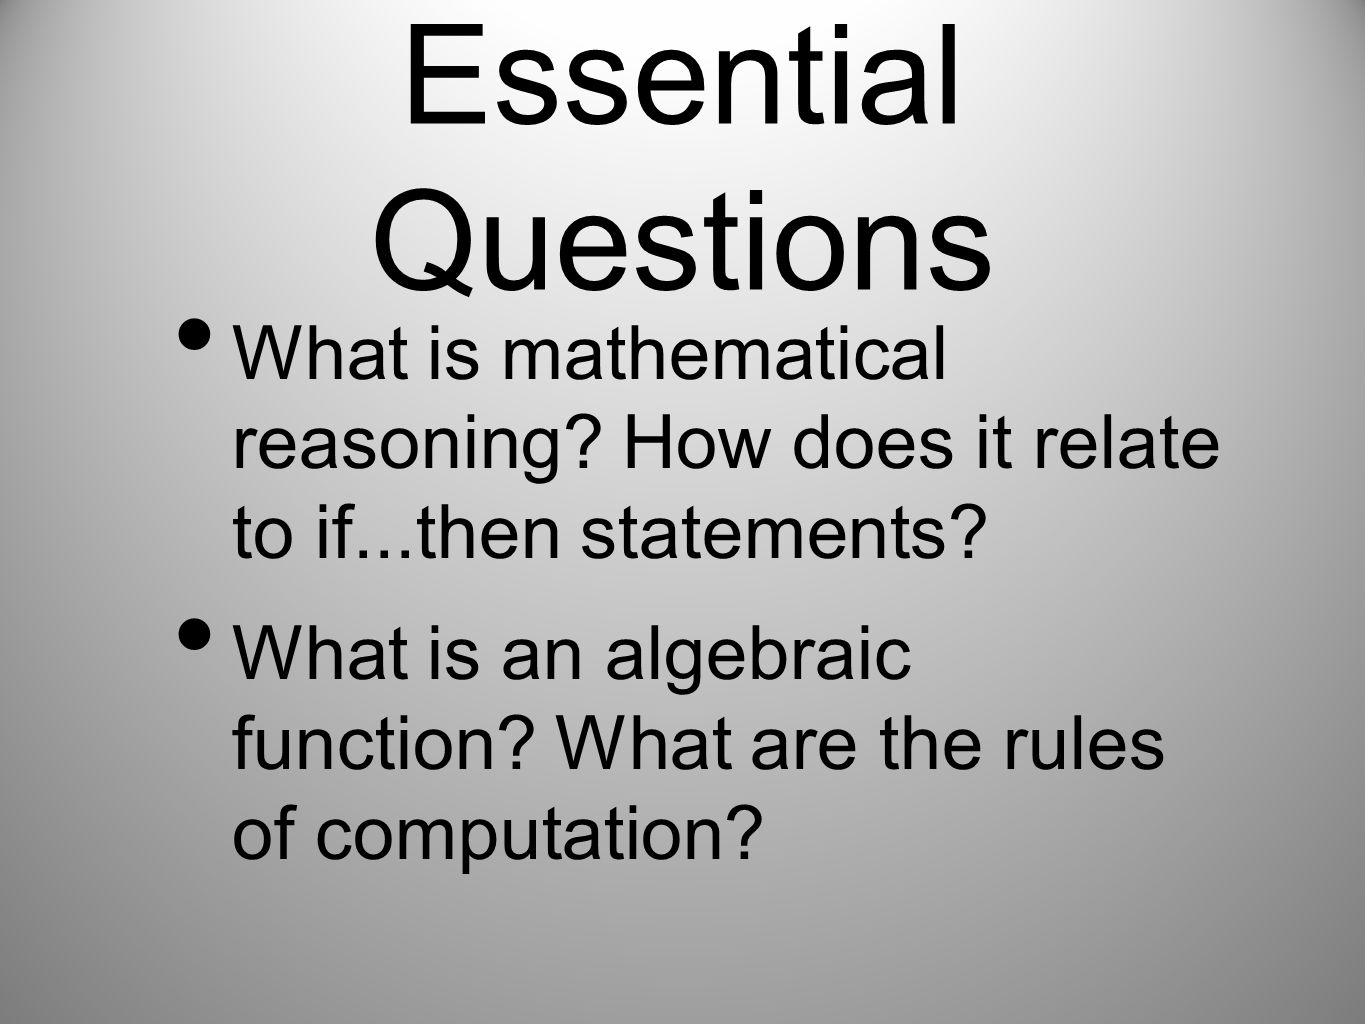 Essential Questions What is mathematical reasoning How does it relate to if...then statements